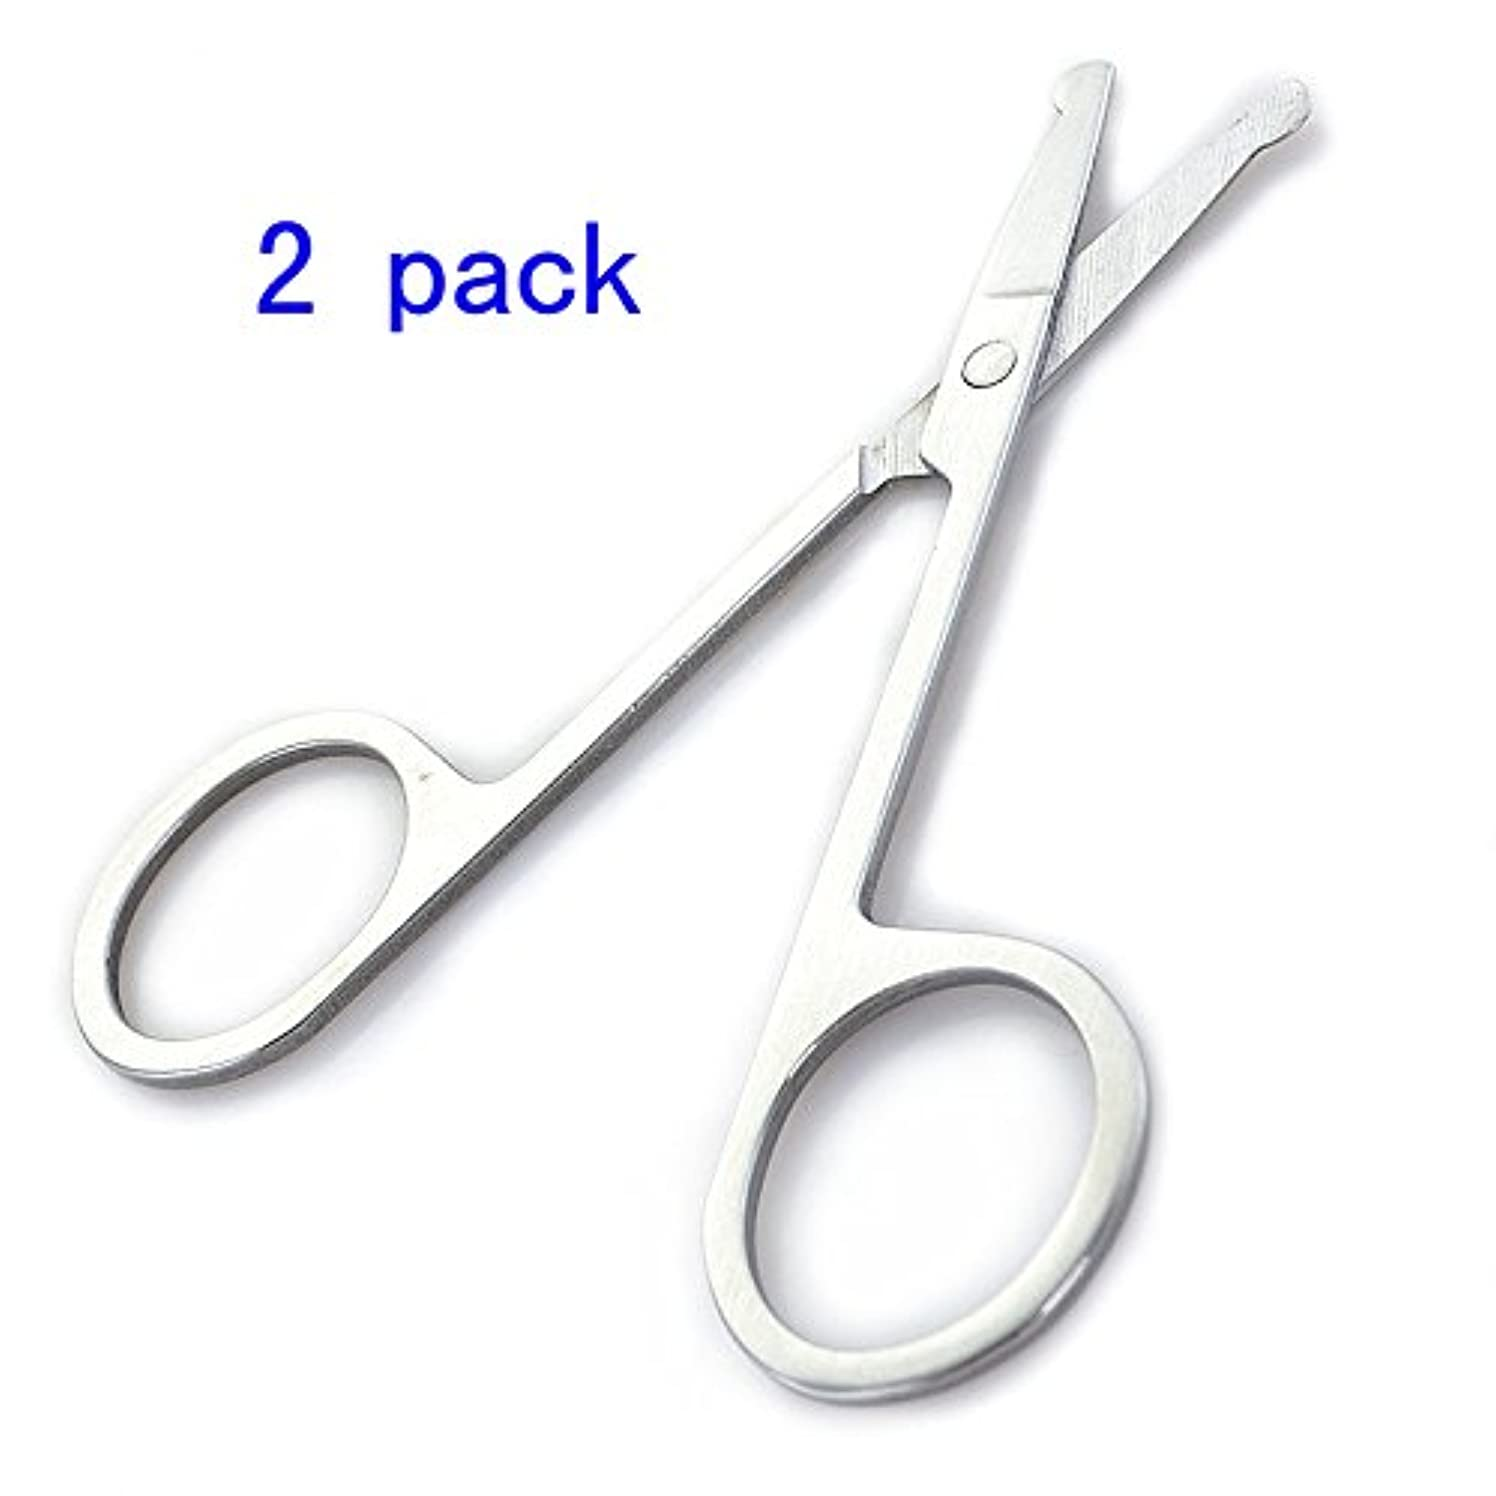 Stainless Steel Professional Nose Ear Scissors 9cm Safety Round Tip Makeup Tool Baby Nail Scissors Pack of 2